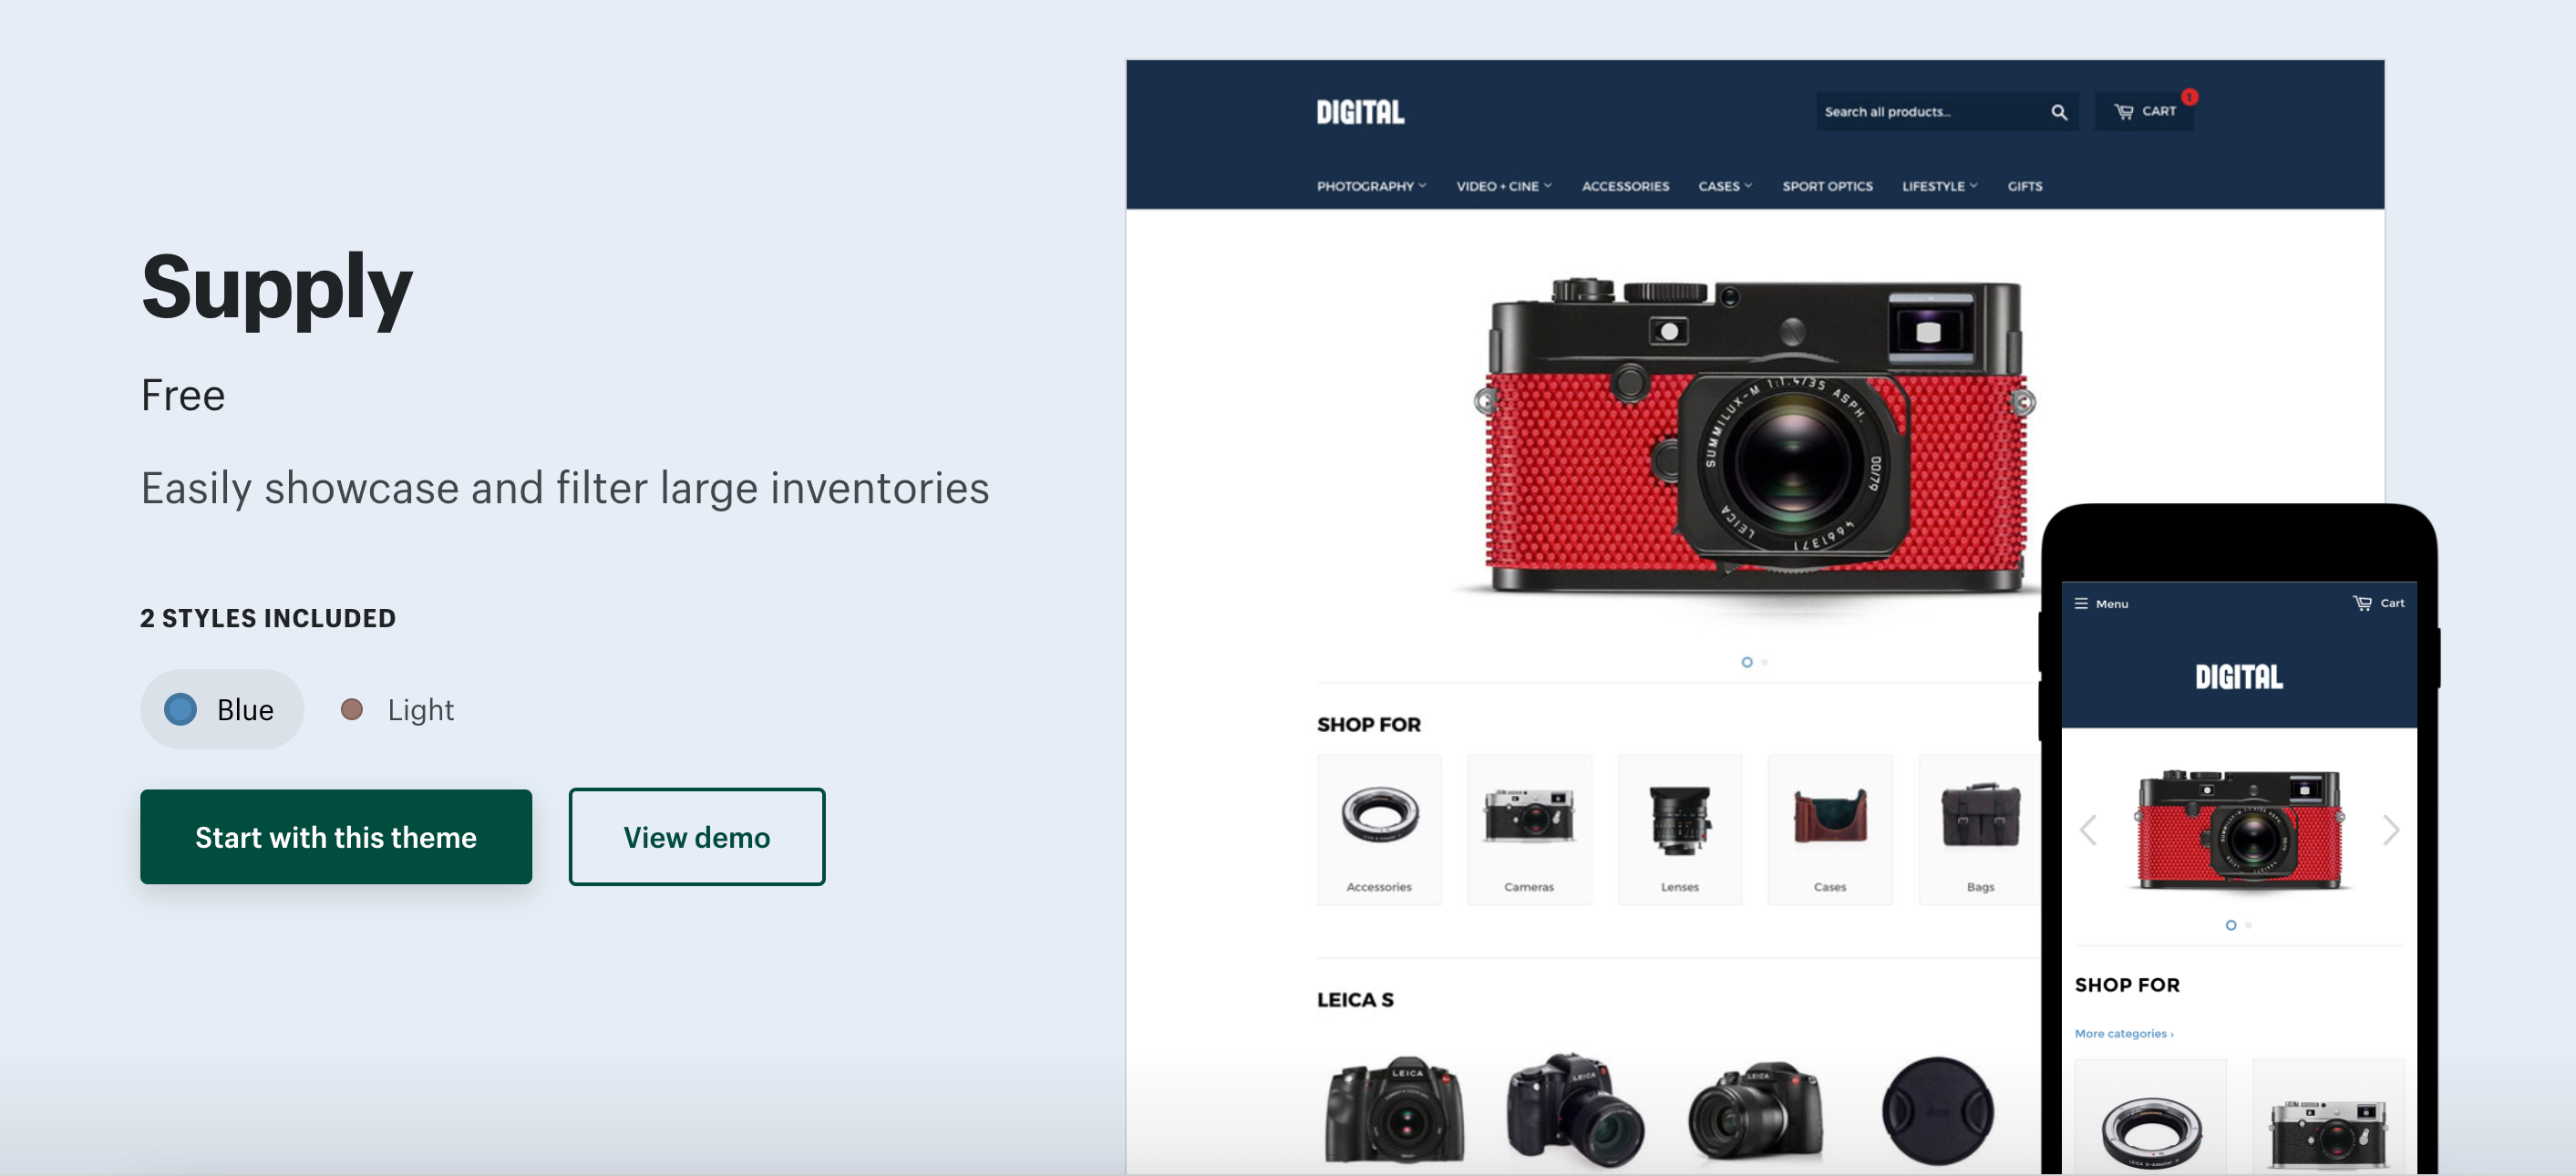 How to Make a Collection of Collections in the Supply Theme on Shopify